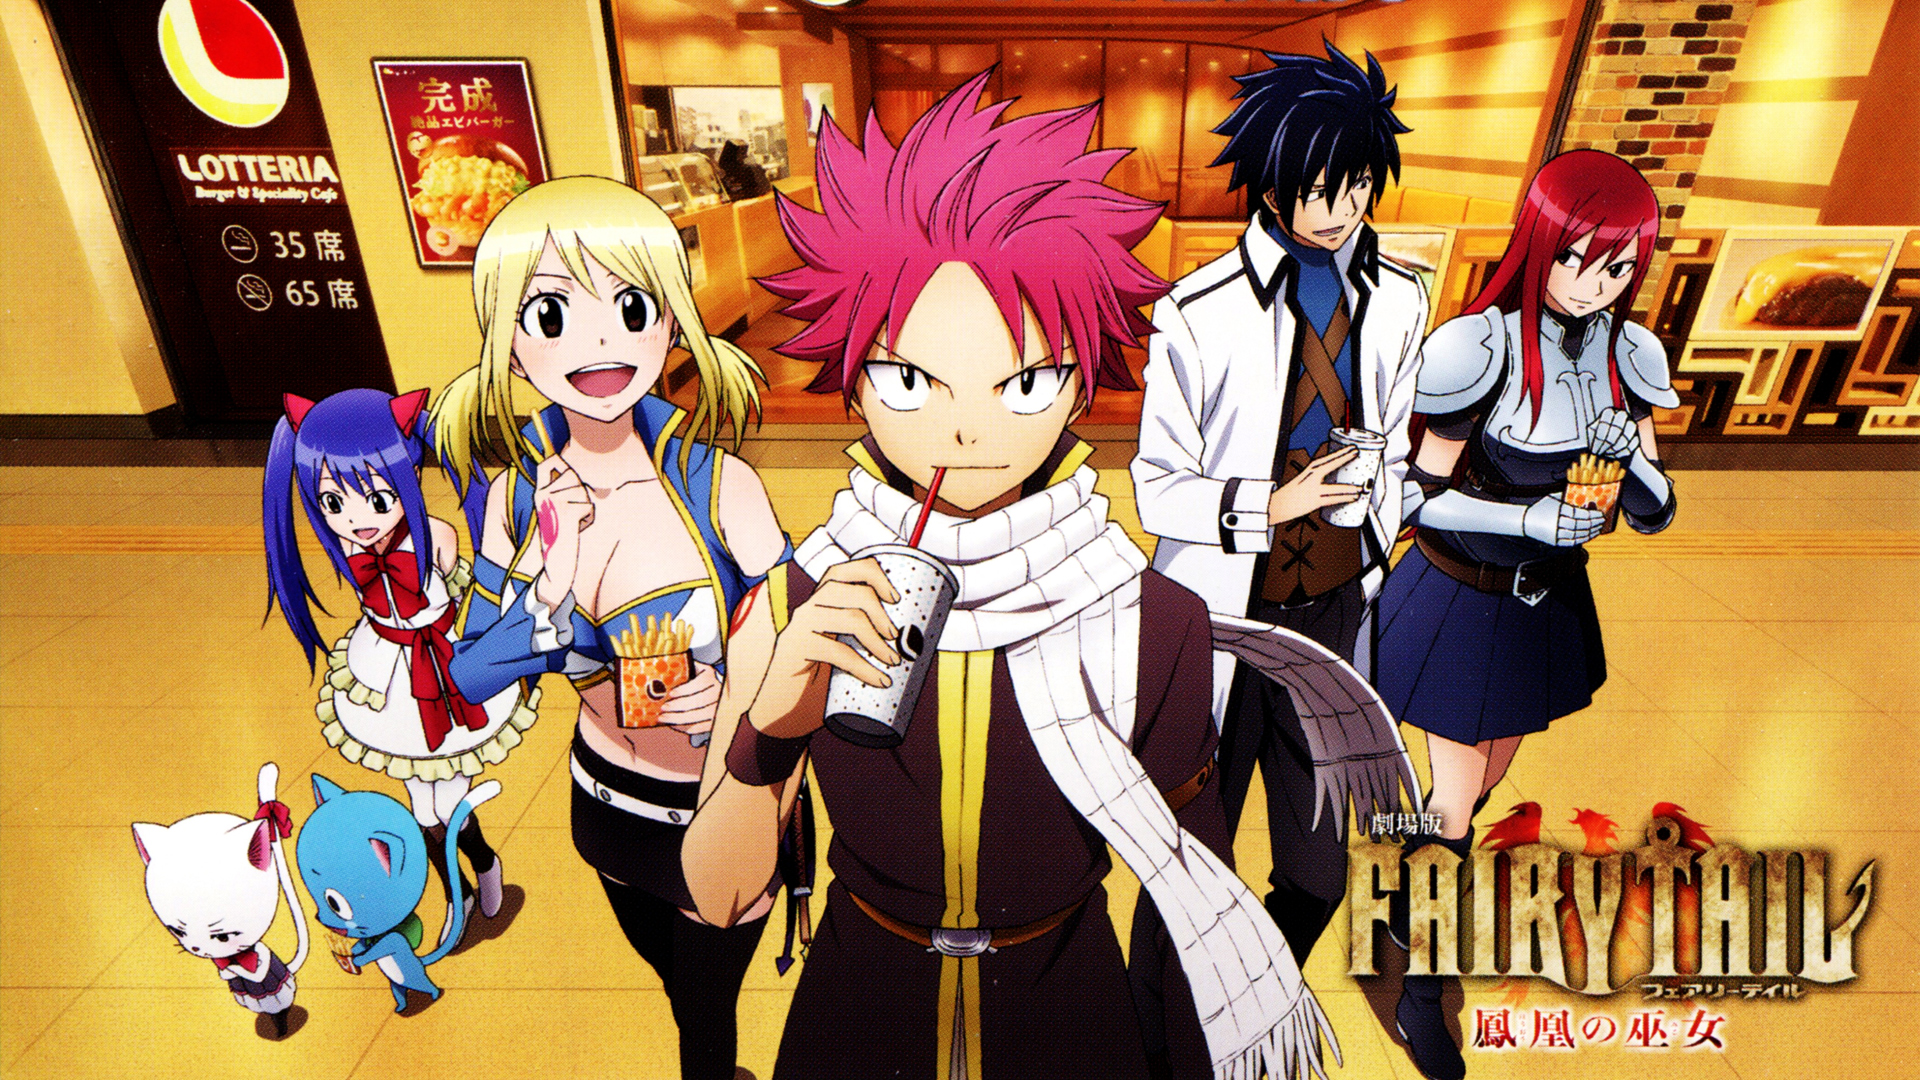 fairy tail anime hd 1920x1080 1080p wallpaper and compatible for 1920x1080